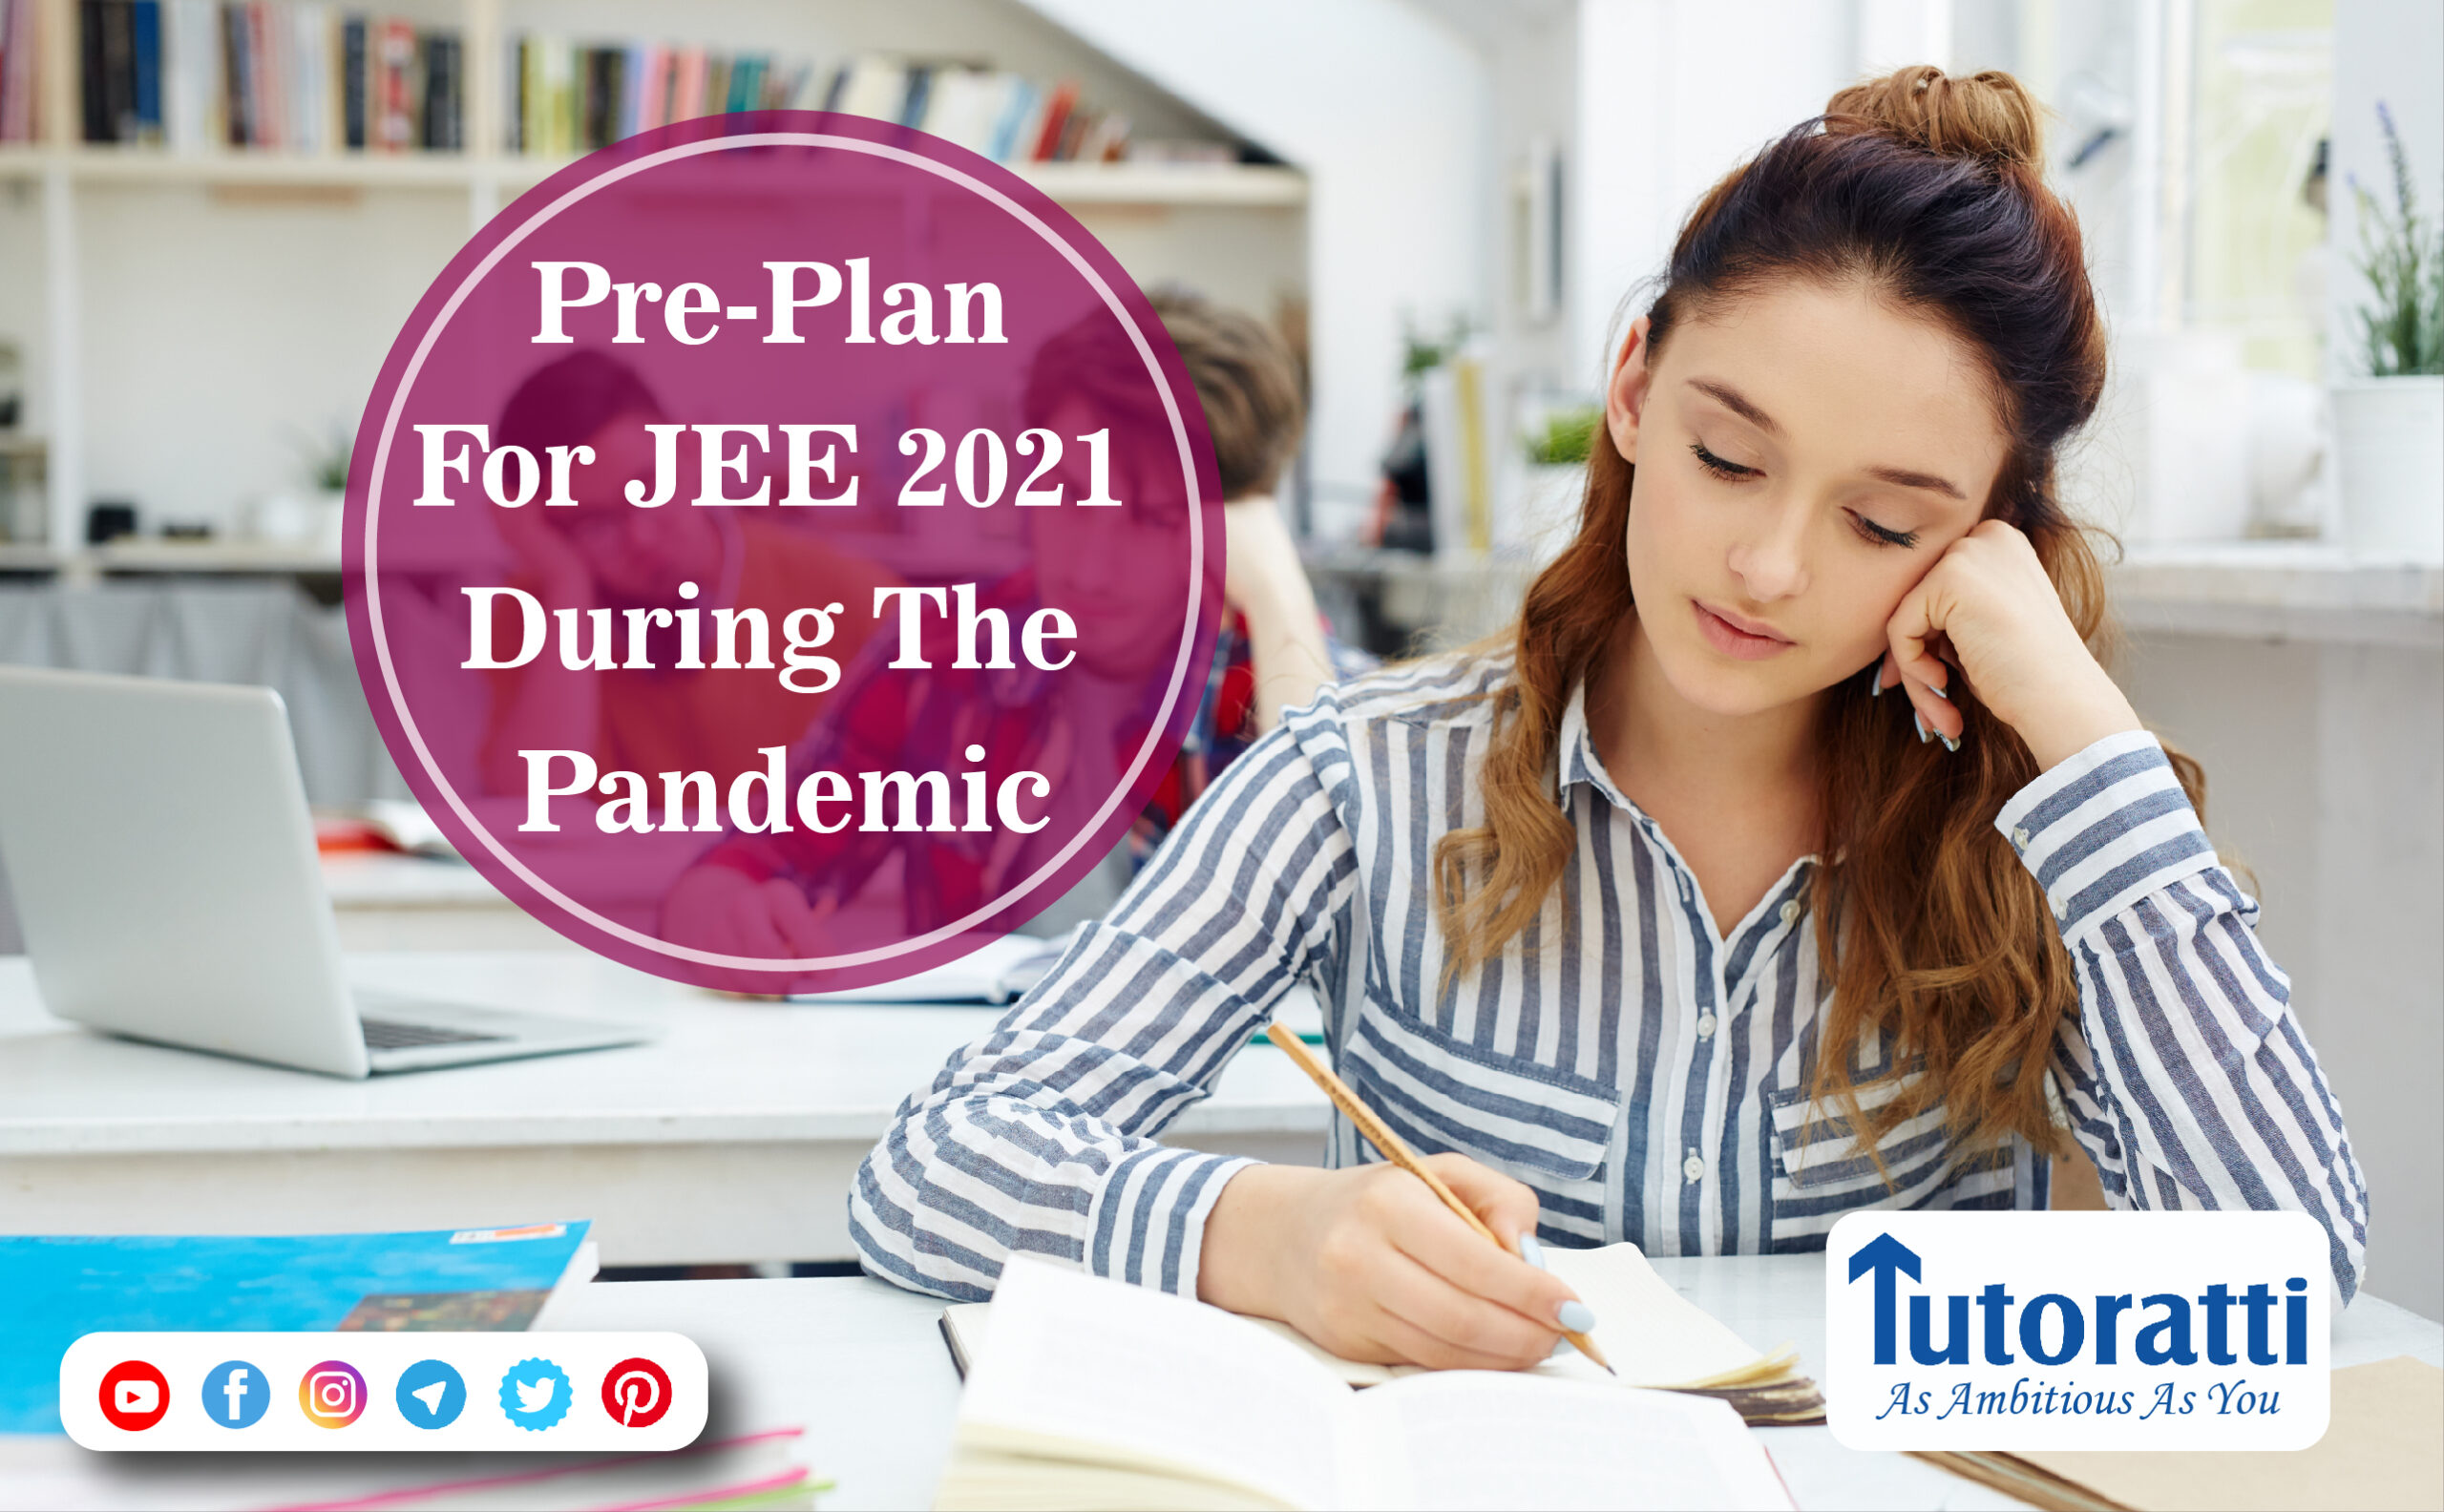 Pre-plan for JEE 2021 During The Pandemic